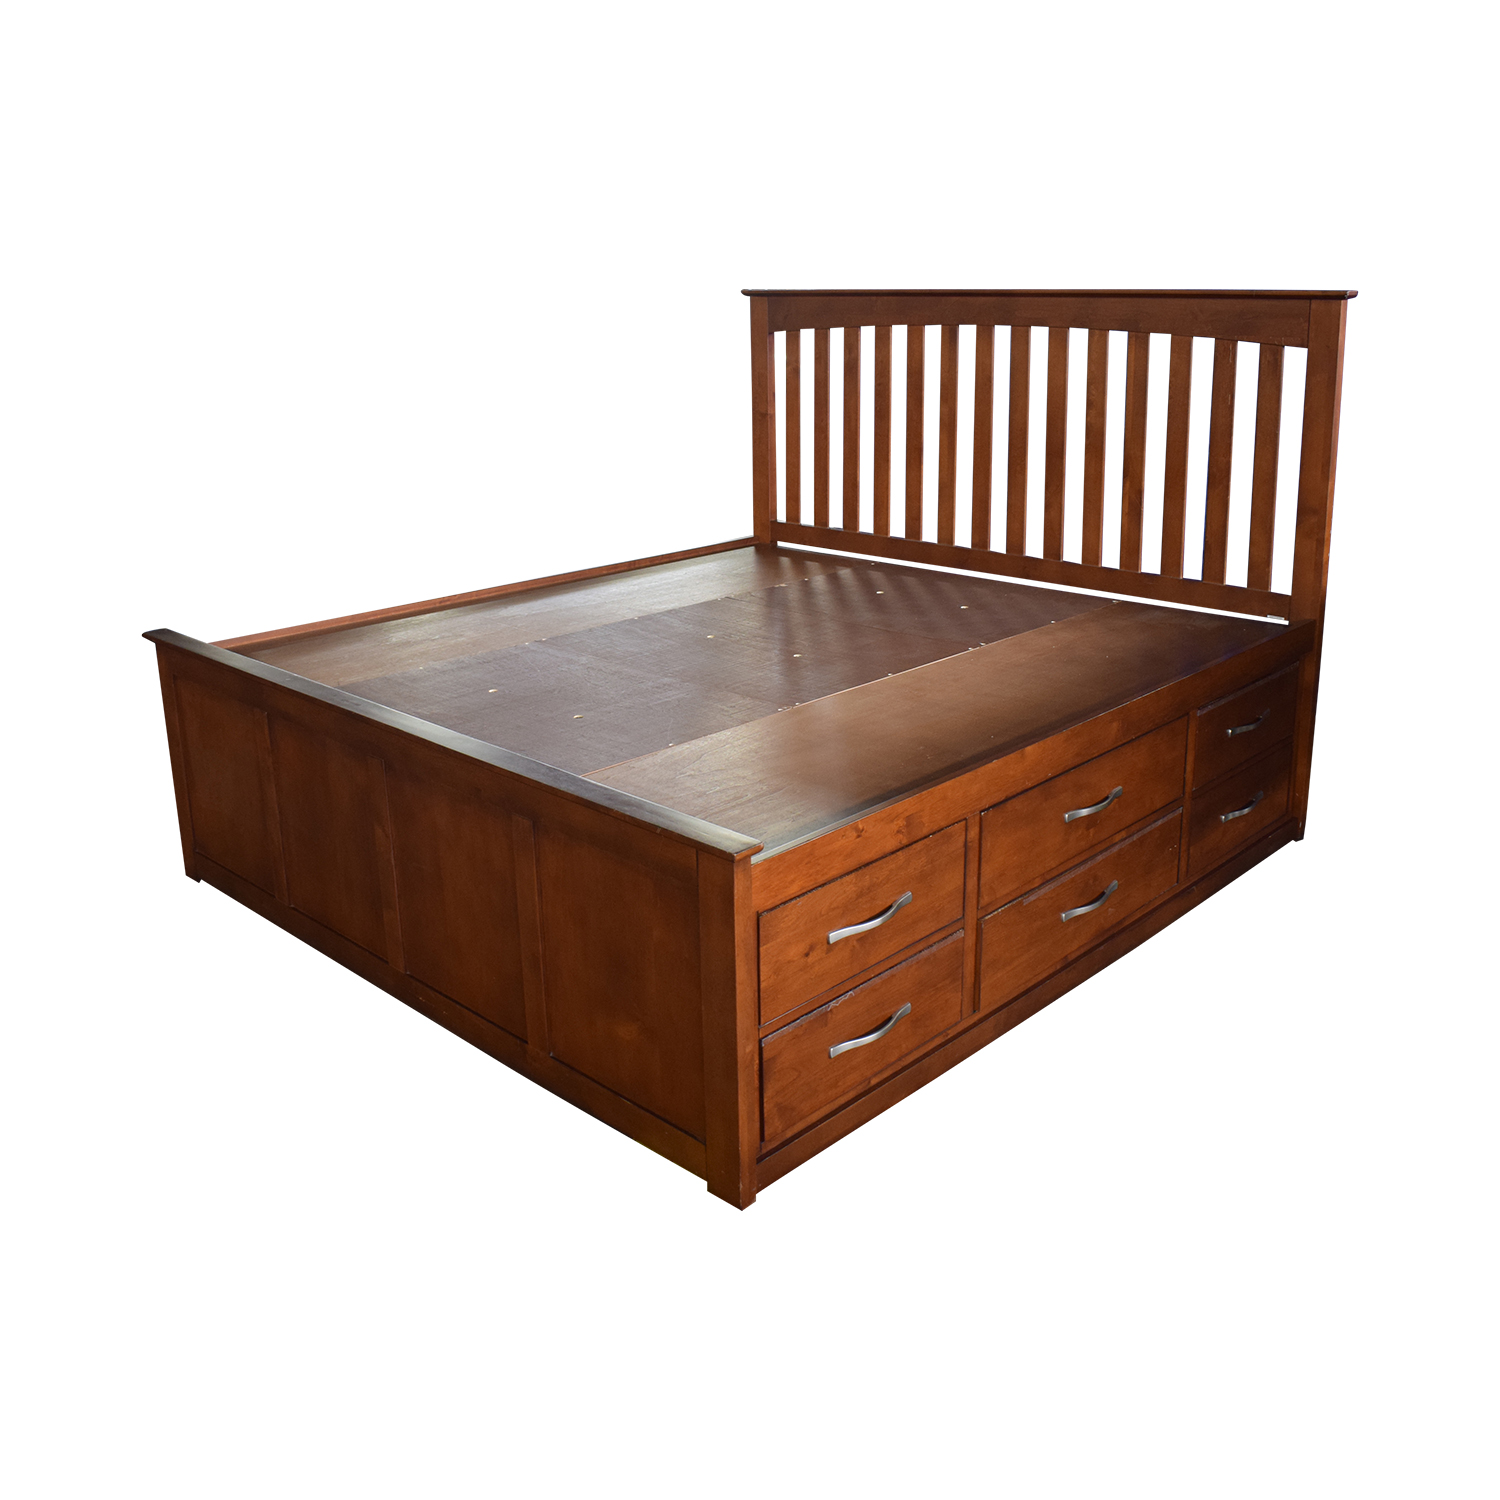 Raymour & Flanigan King Platform Bed Frame with Storage Drawers sale